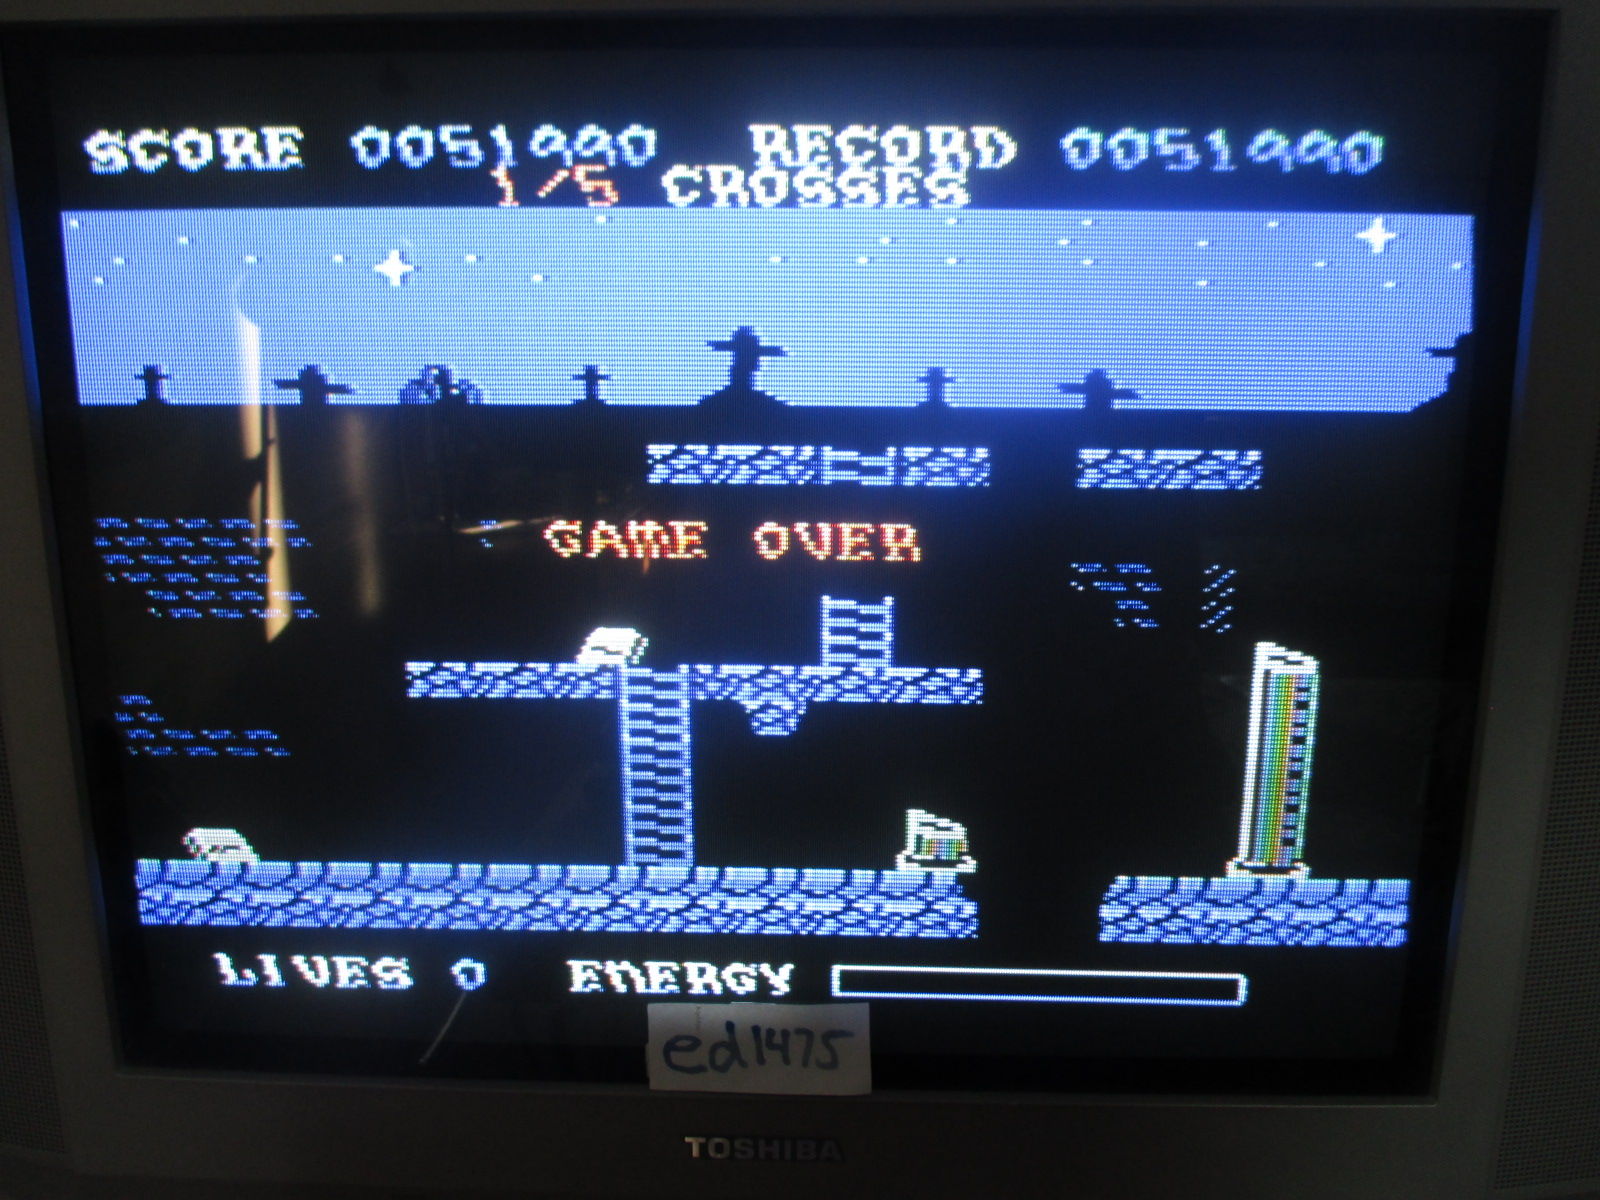 ed1475: Princess Quest (Colecovision) 51,990 points on 2014-06-24 21:05:35